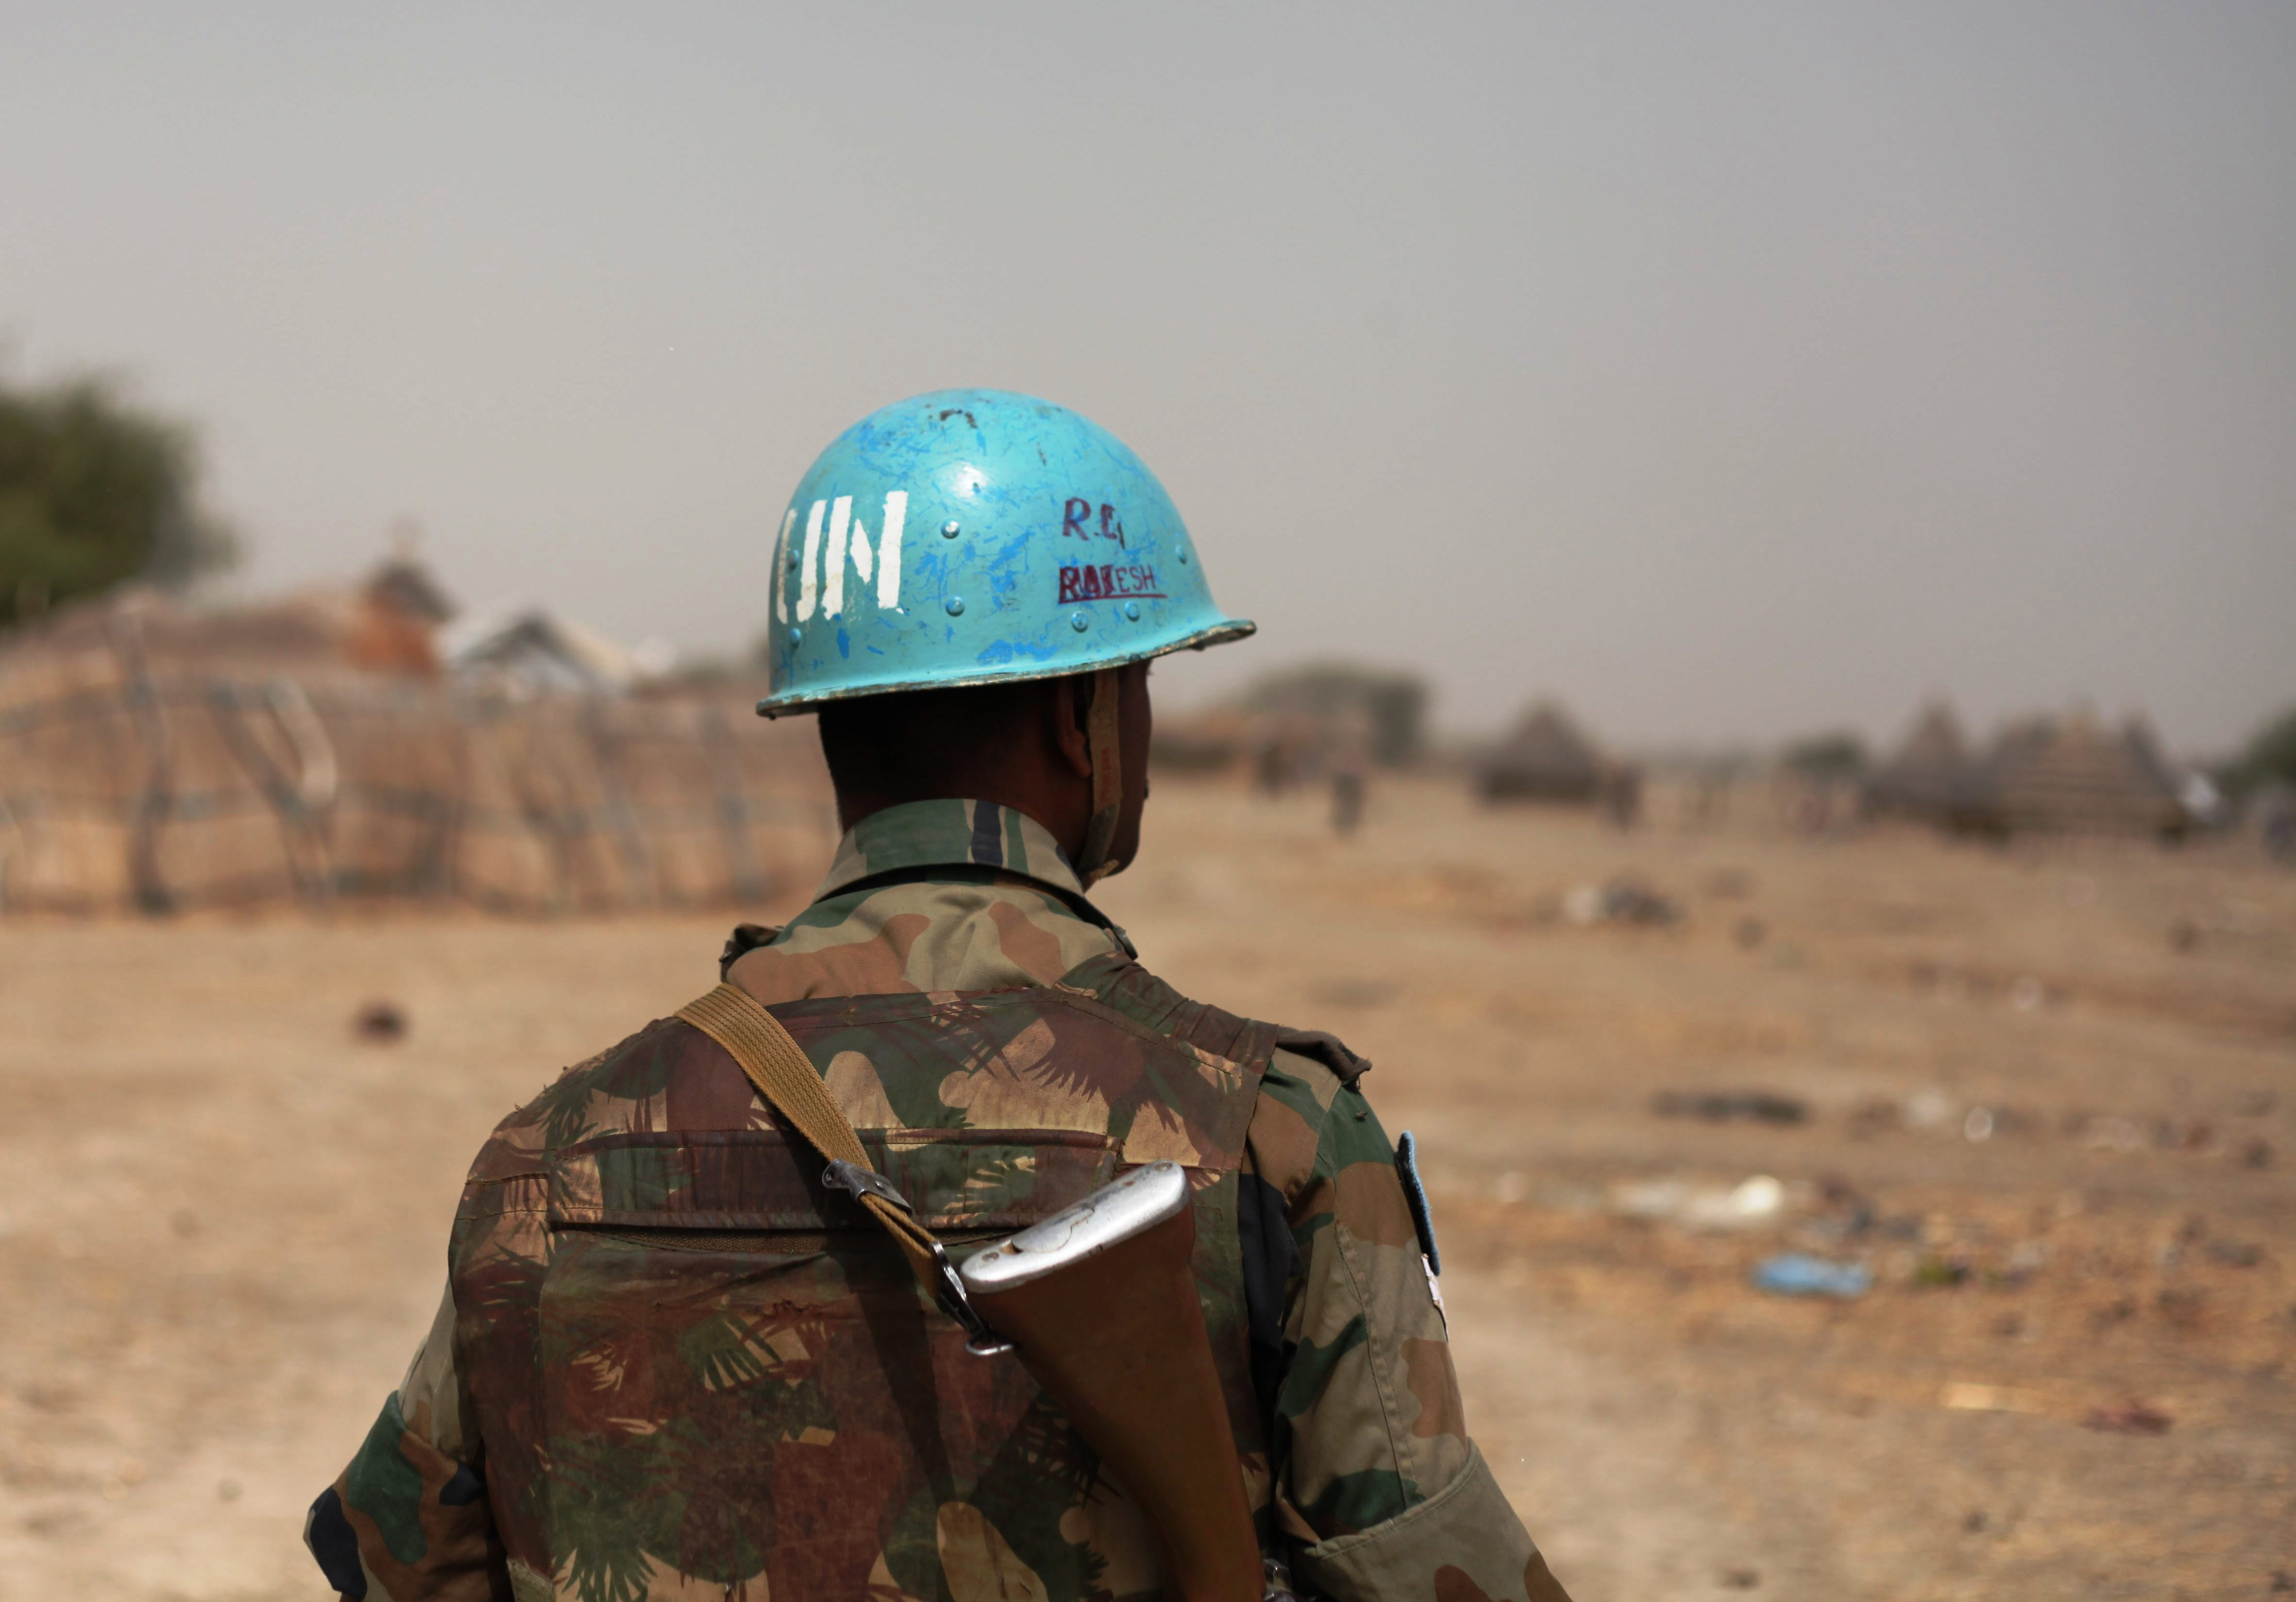 UN Peacekeeper patrolling in Akobo, South Sudan